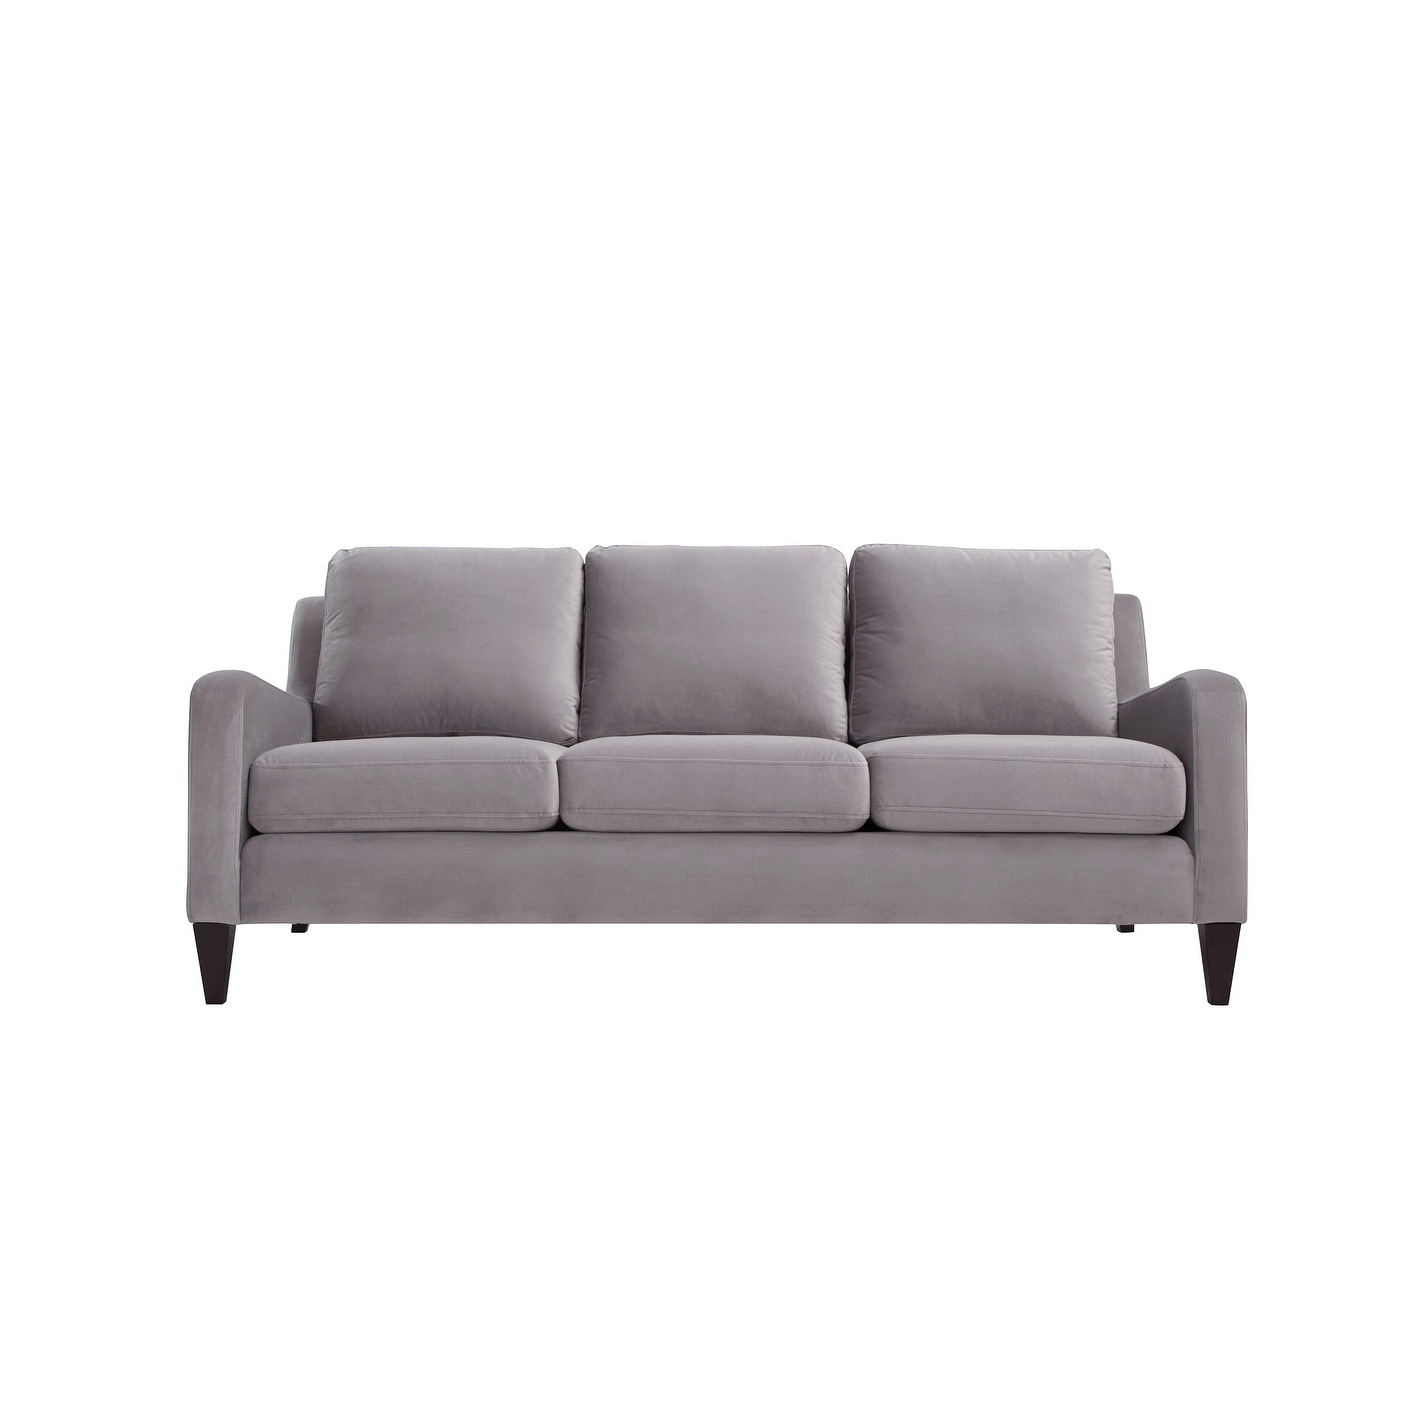 High Quality Jennifer Taylor Serena Lawson Sofa   Free Shipping Today   Overstock    24236382